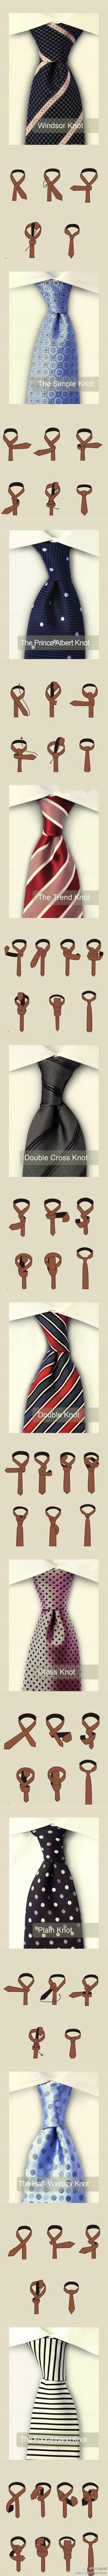 How to tie ties... good to know!